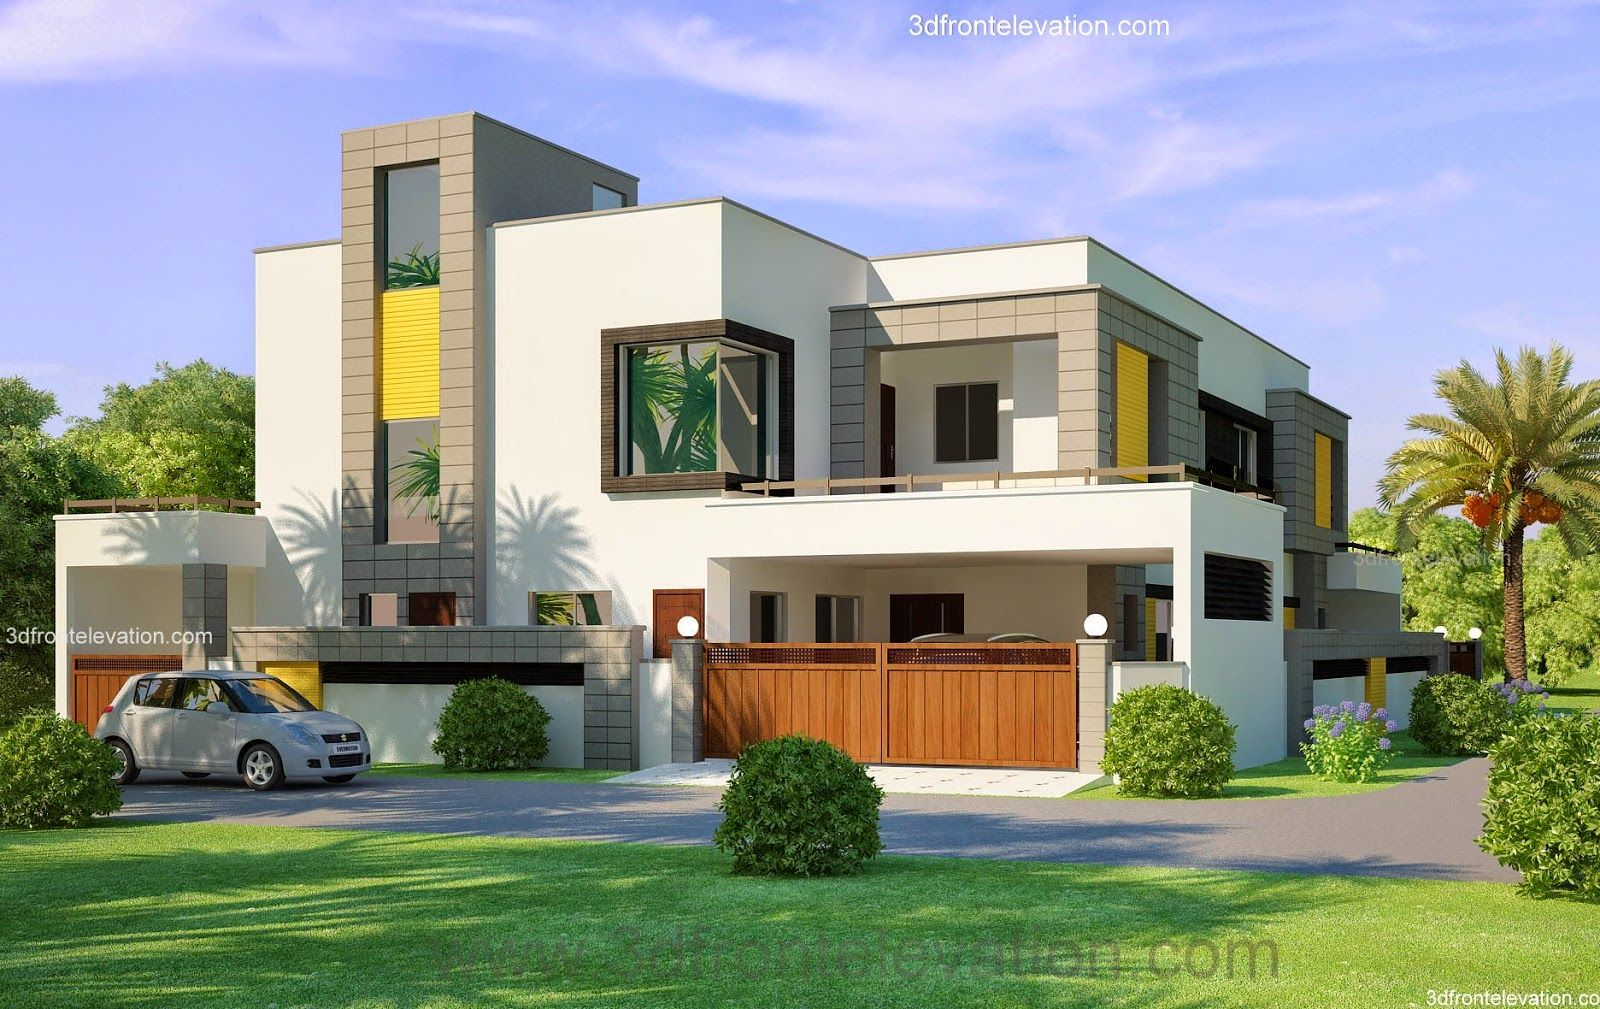 1 kanal corner plot 2 house design lahore beautiful Hd home design 3d